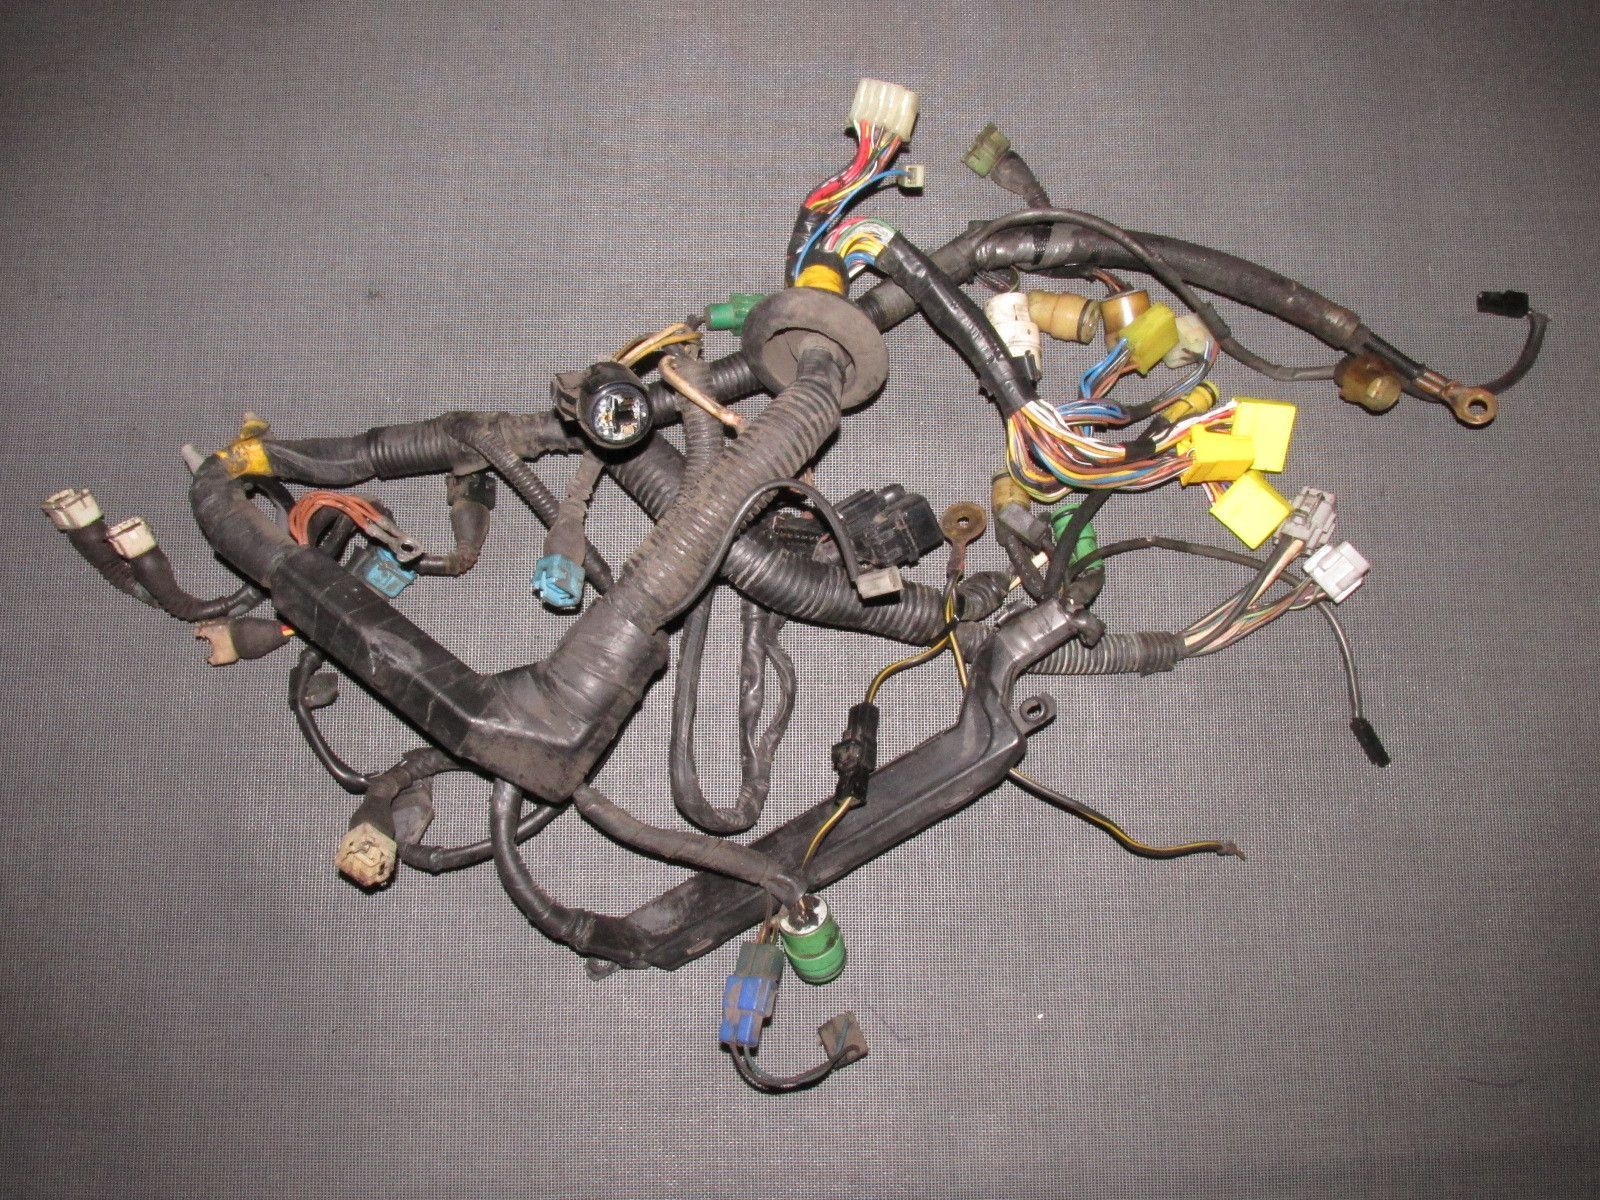 small resolution of 85 86 87 88 89 toyota mr2 oem 4age engine wiring harness cars wiring harness components